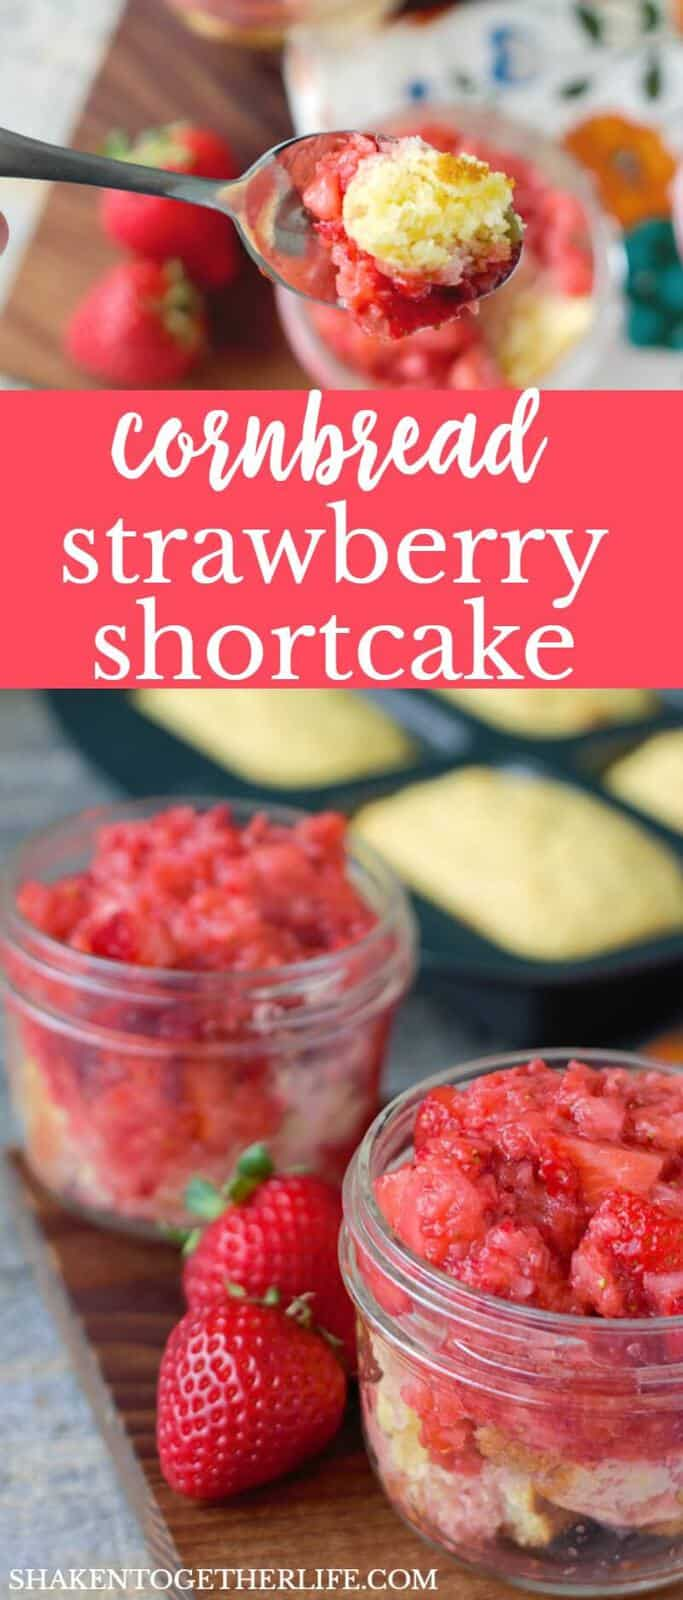 Cornbread Strawberry Shortcake - served in mason jars! - is the perfect easy dessert for parties, picnics and potlucks!